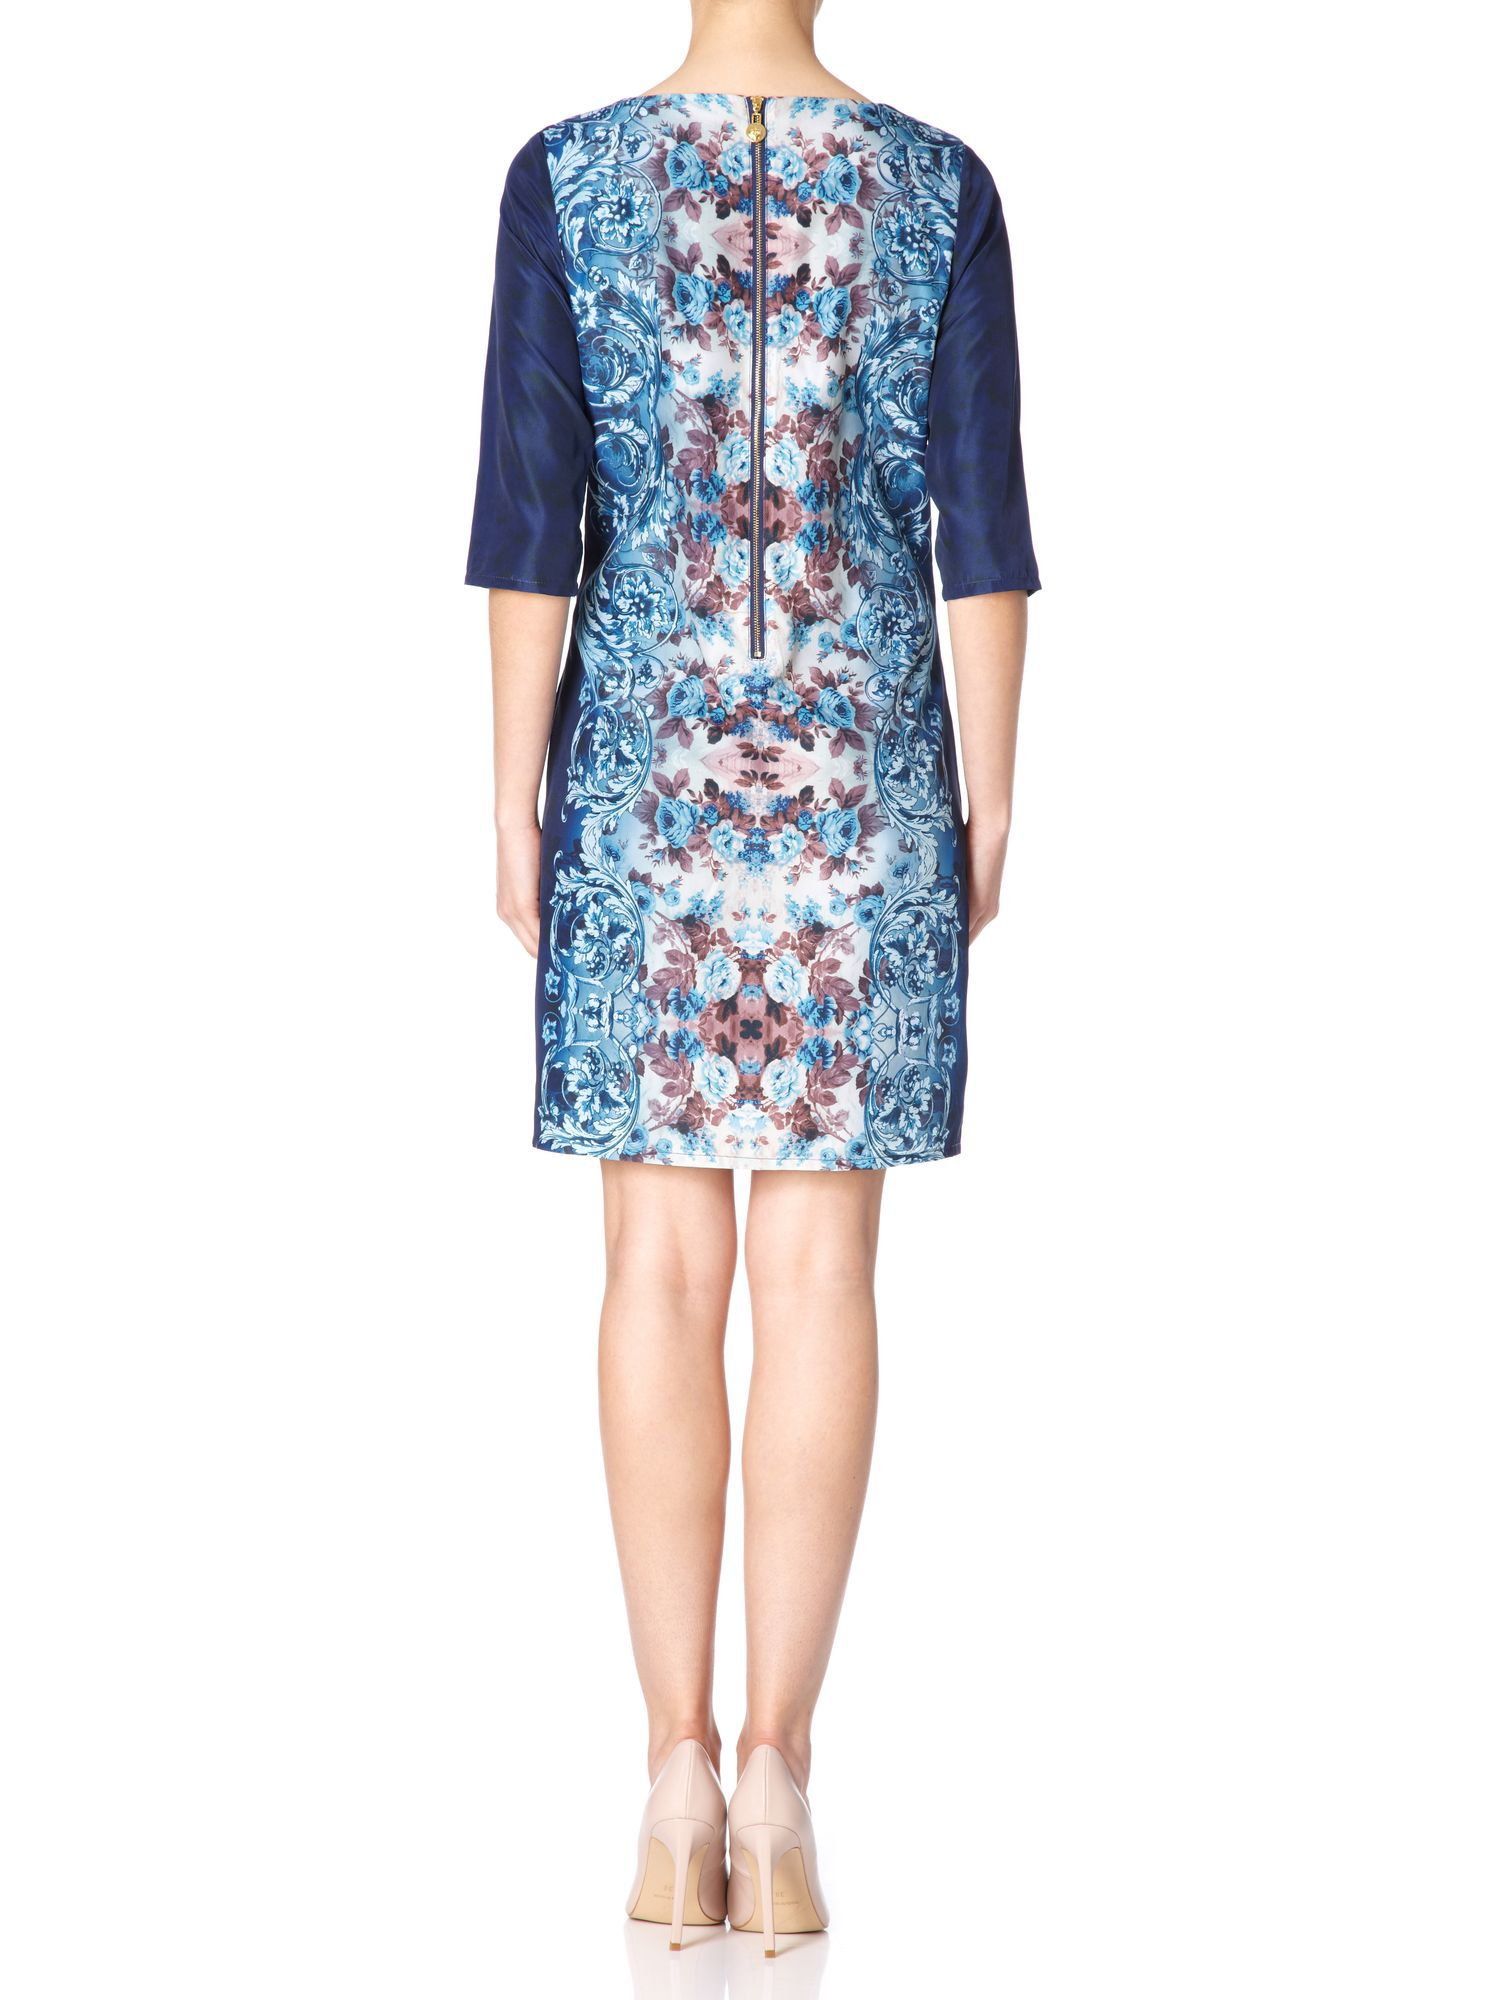 The Mirrored Paisley Floral Dress